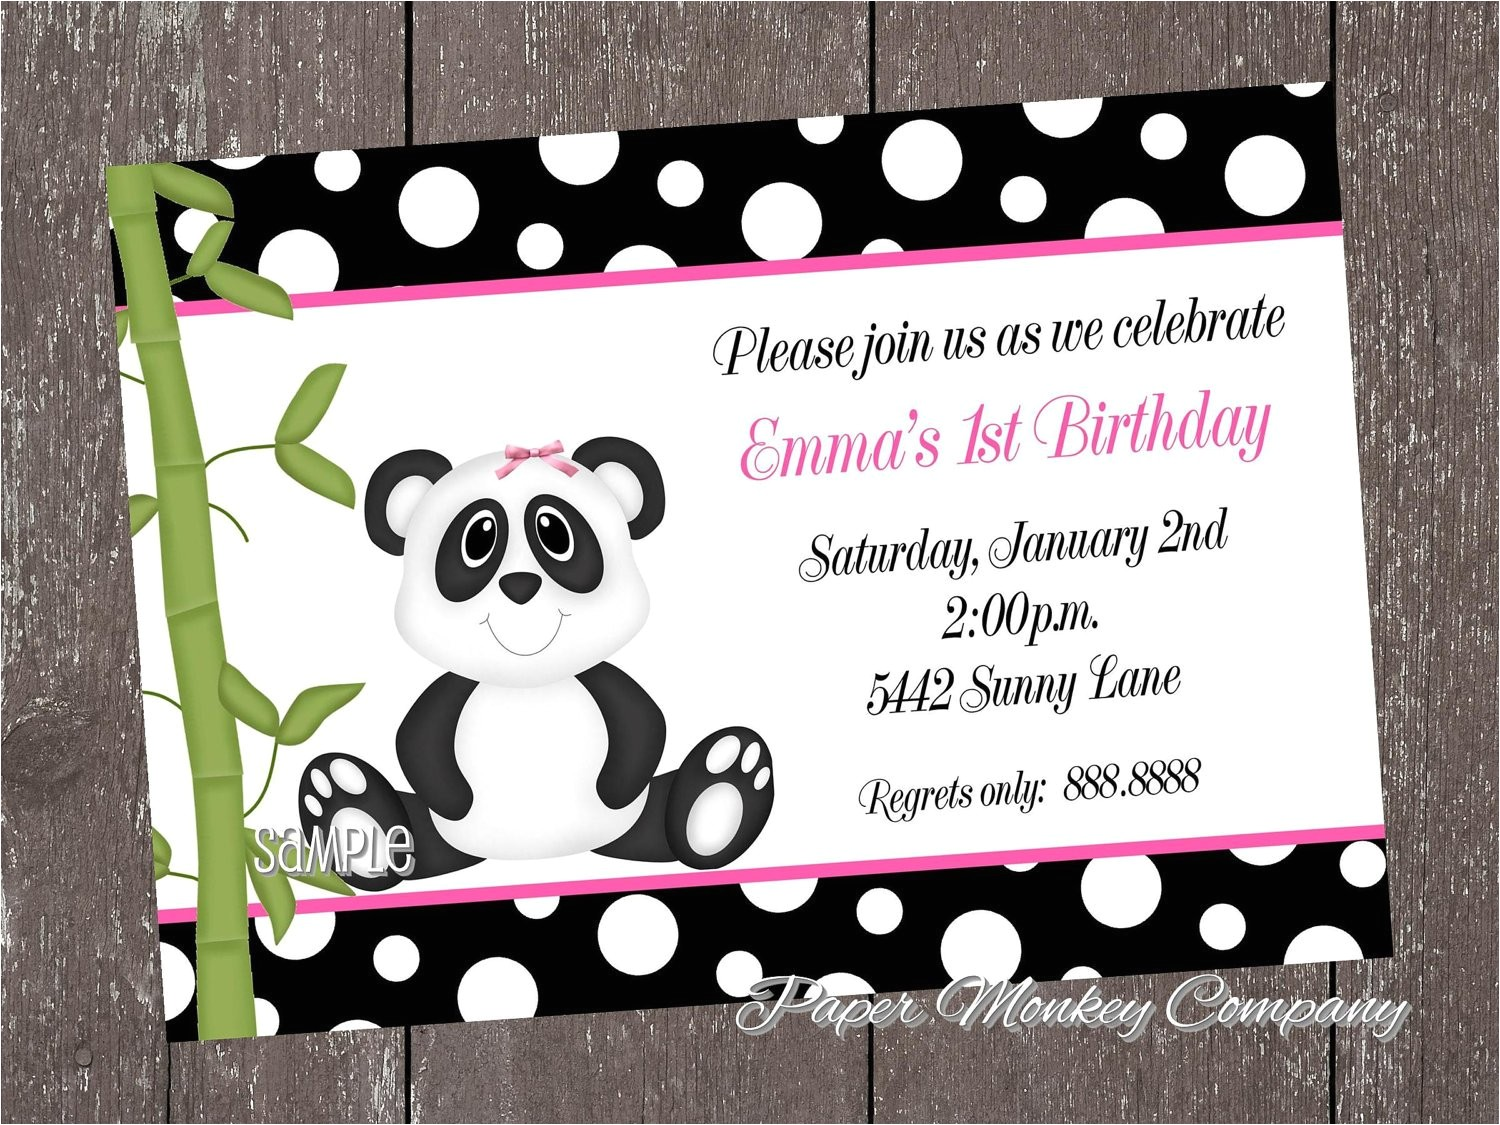 Panda Bear Birthday Party Invitations Panda Bear Birthday Invitations for Boy or Girl